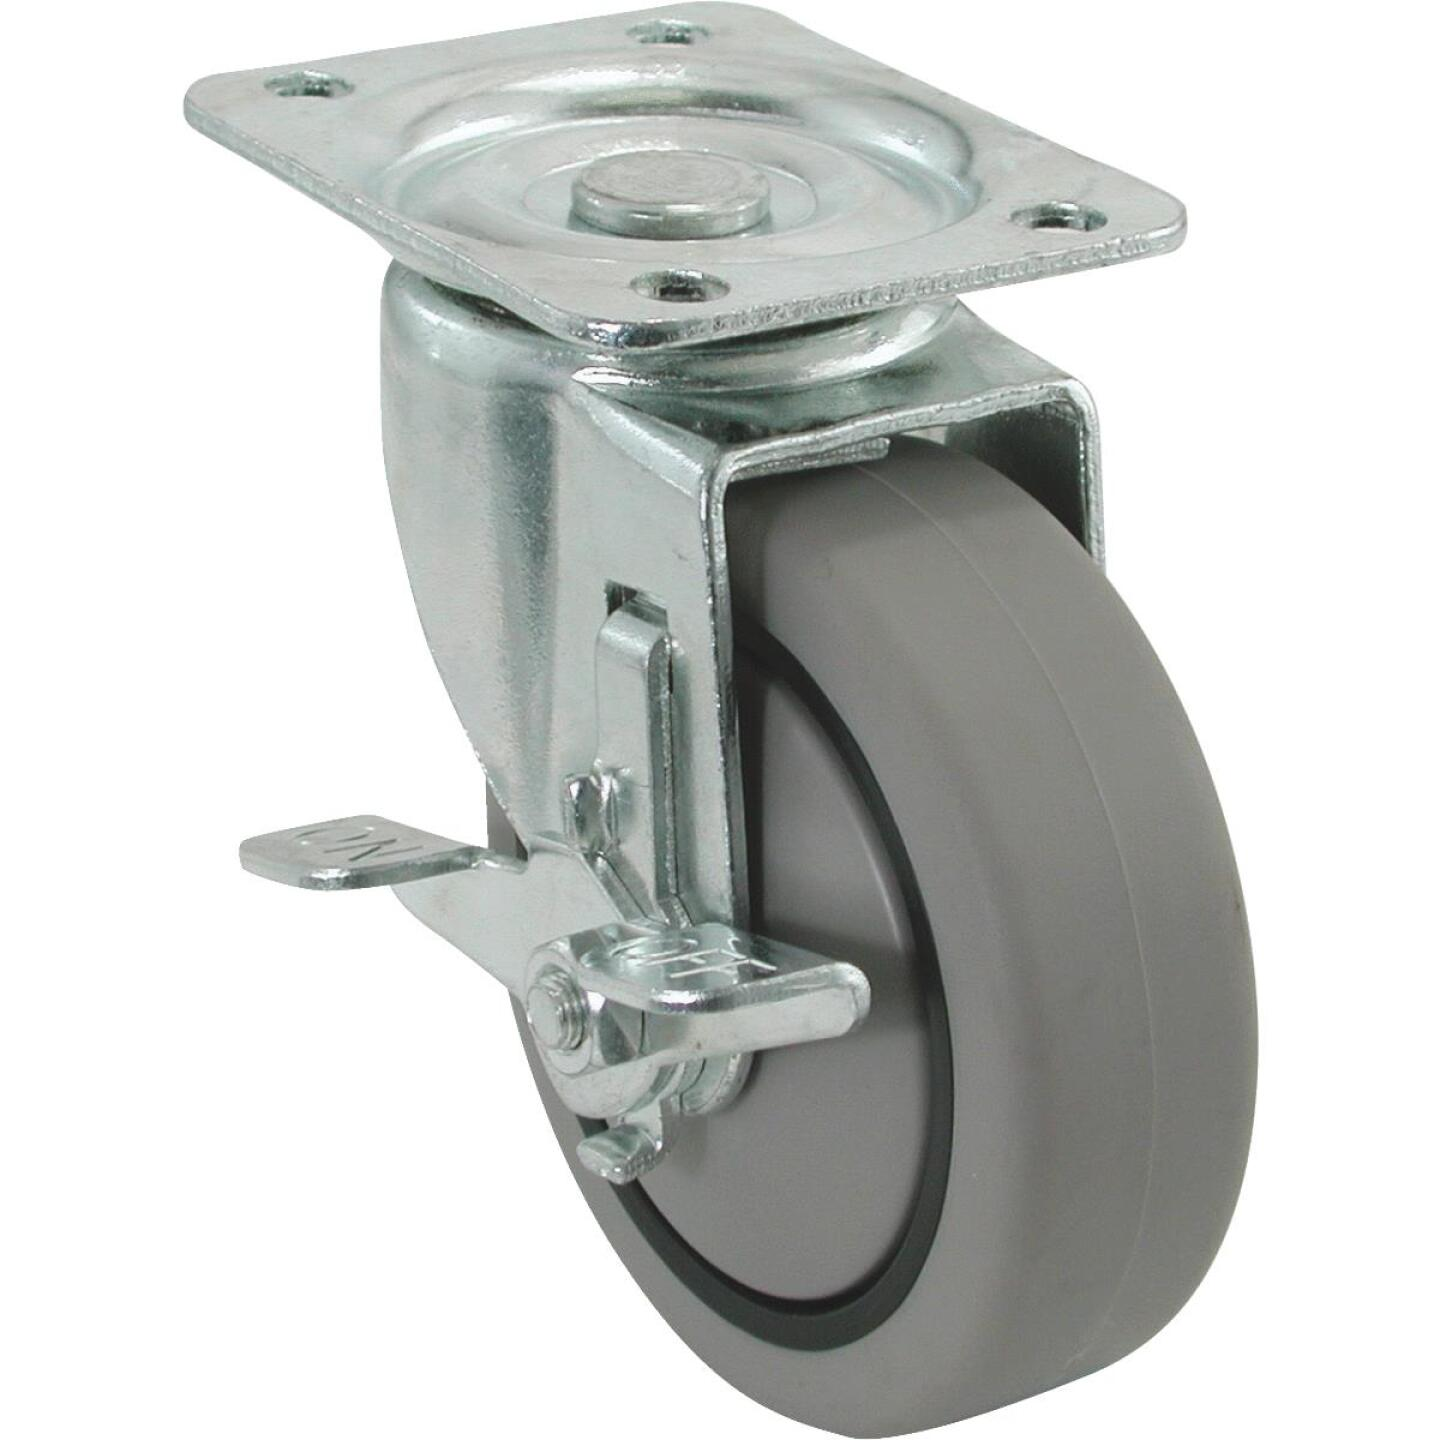 Shepherd 4 In. Thermoplastic Swivel Plate Caster with Brake Image 1